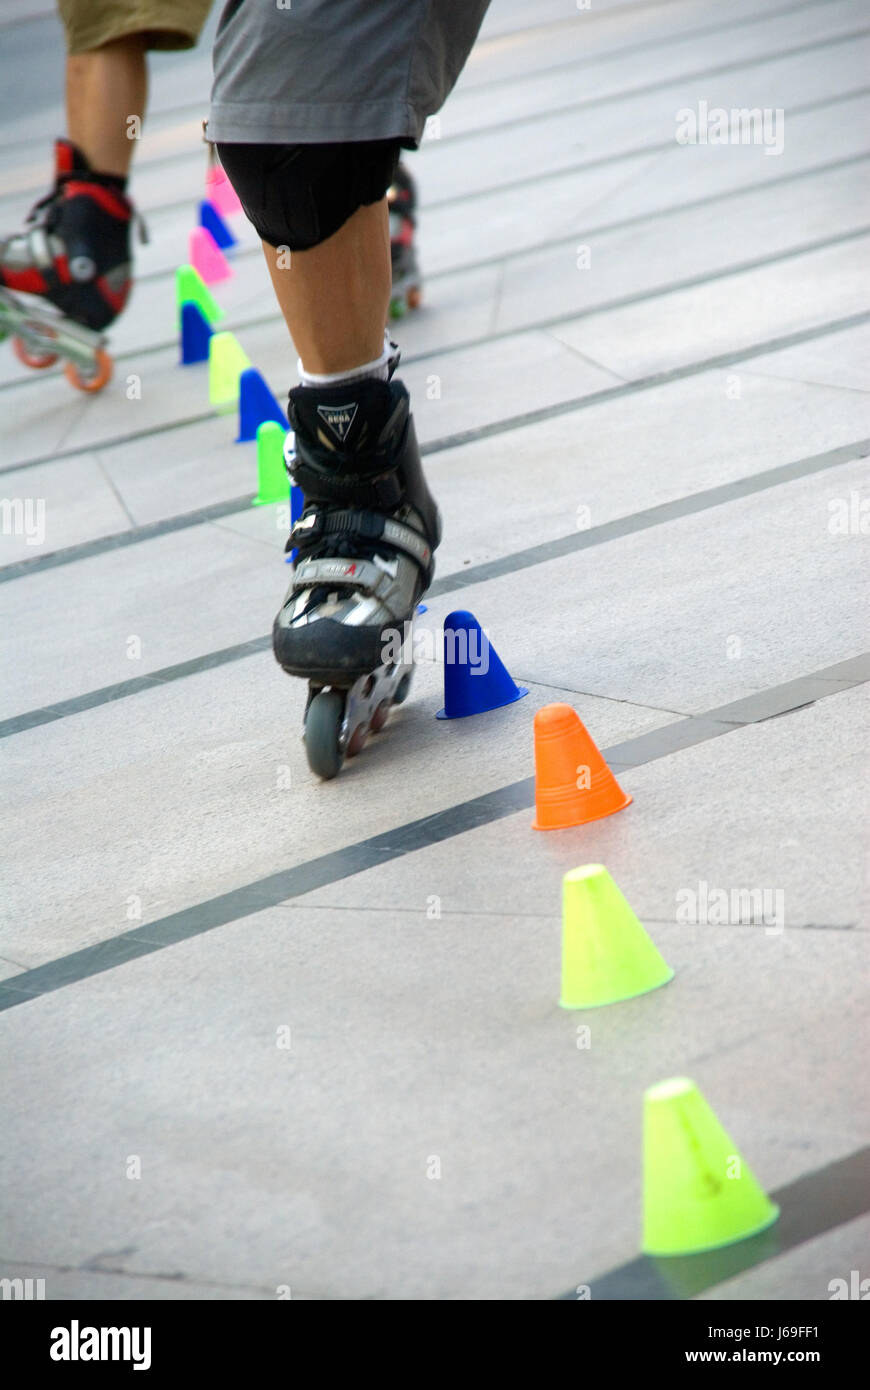 Roller dozer shoes - Action Roller Slalom Skate Activities Operations Boy Lad Male Youngster Stock Image